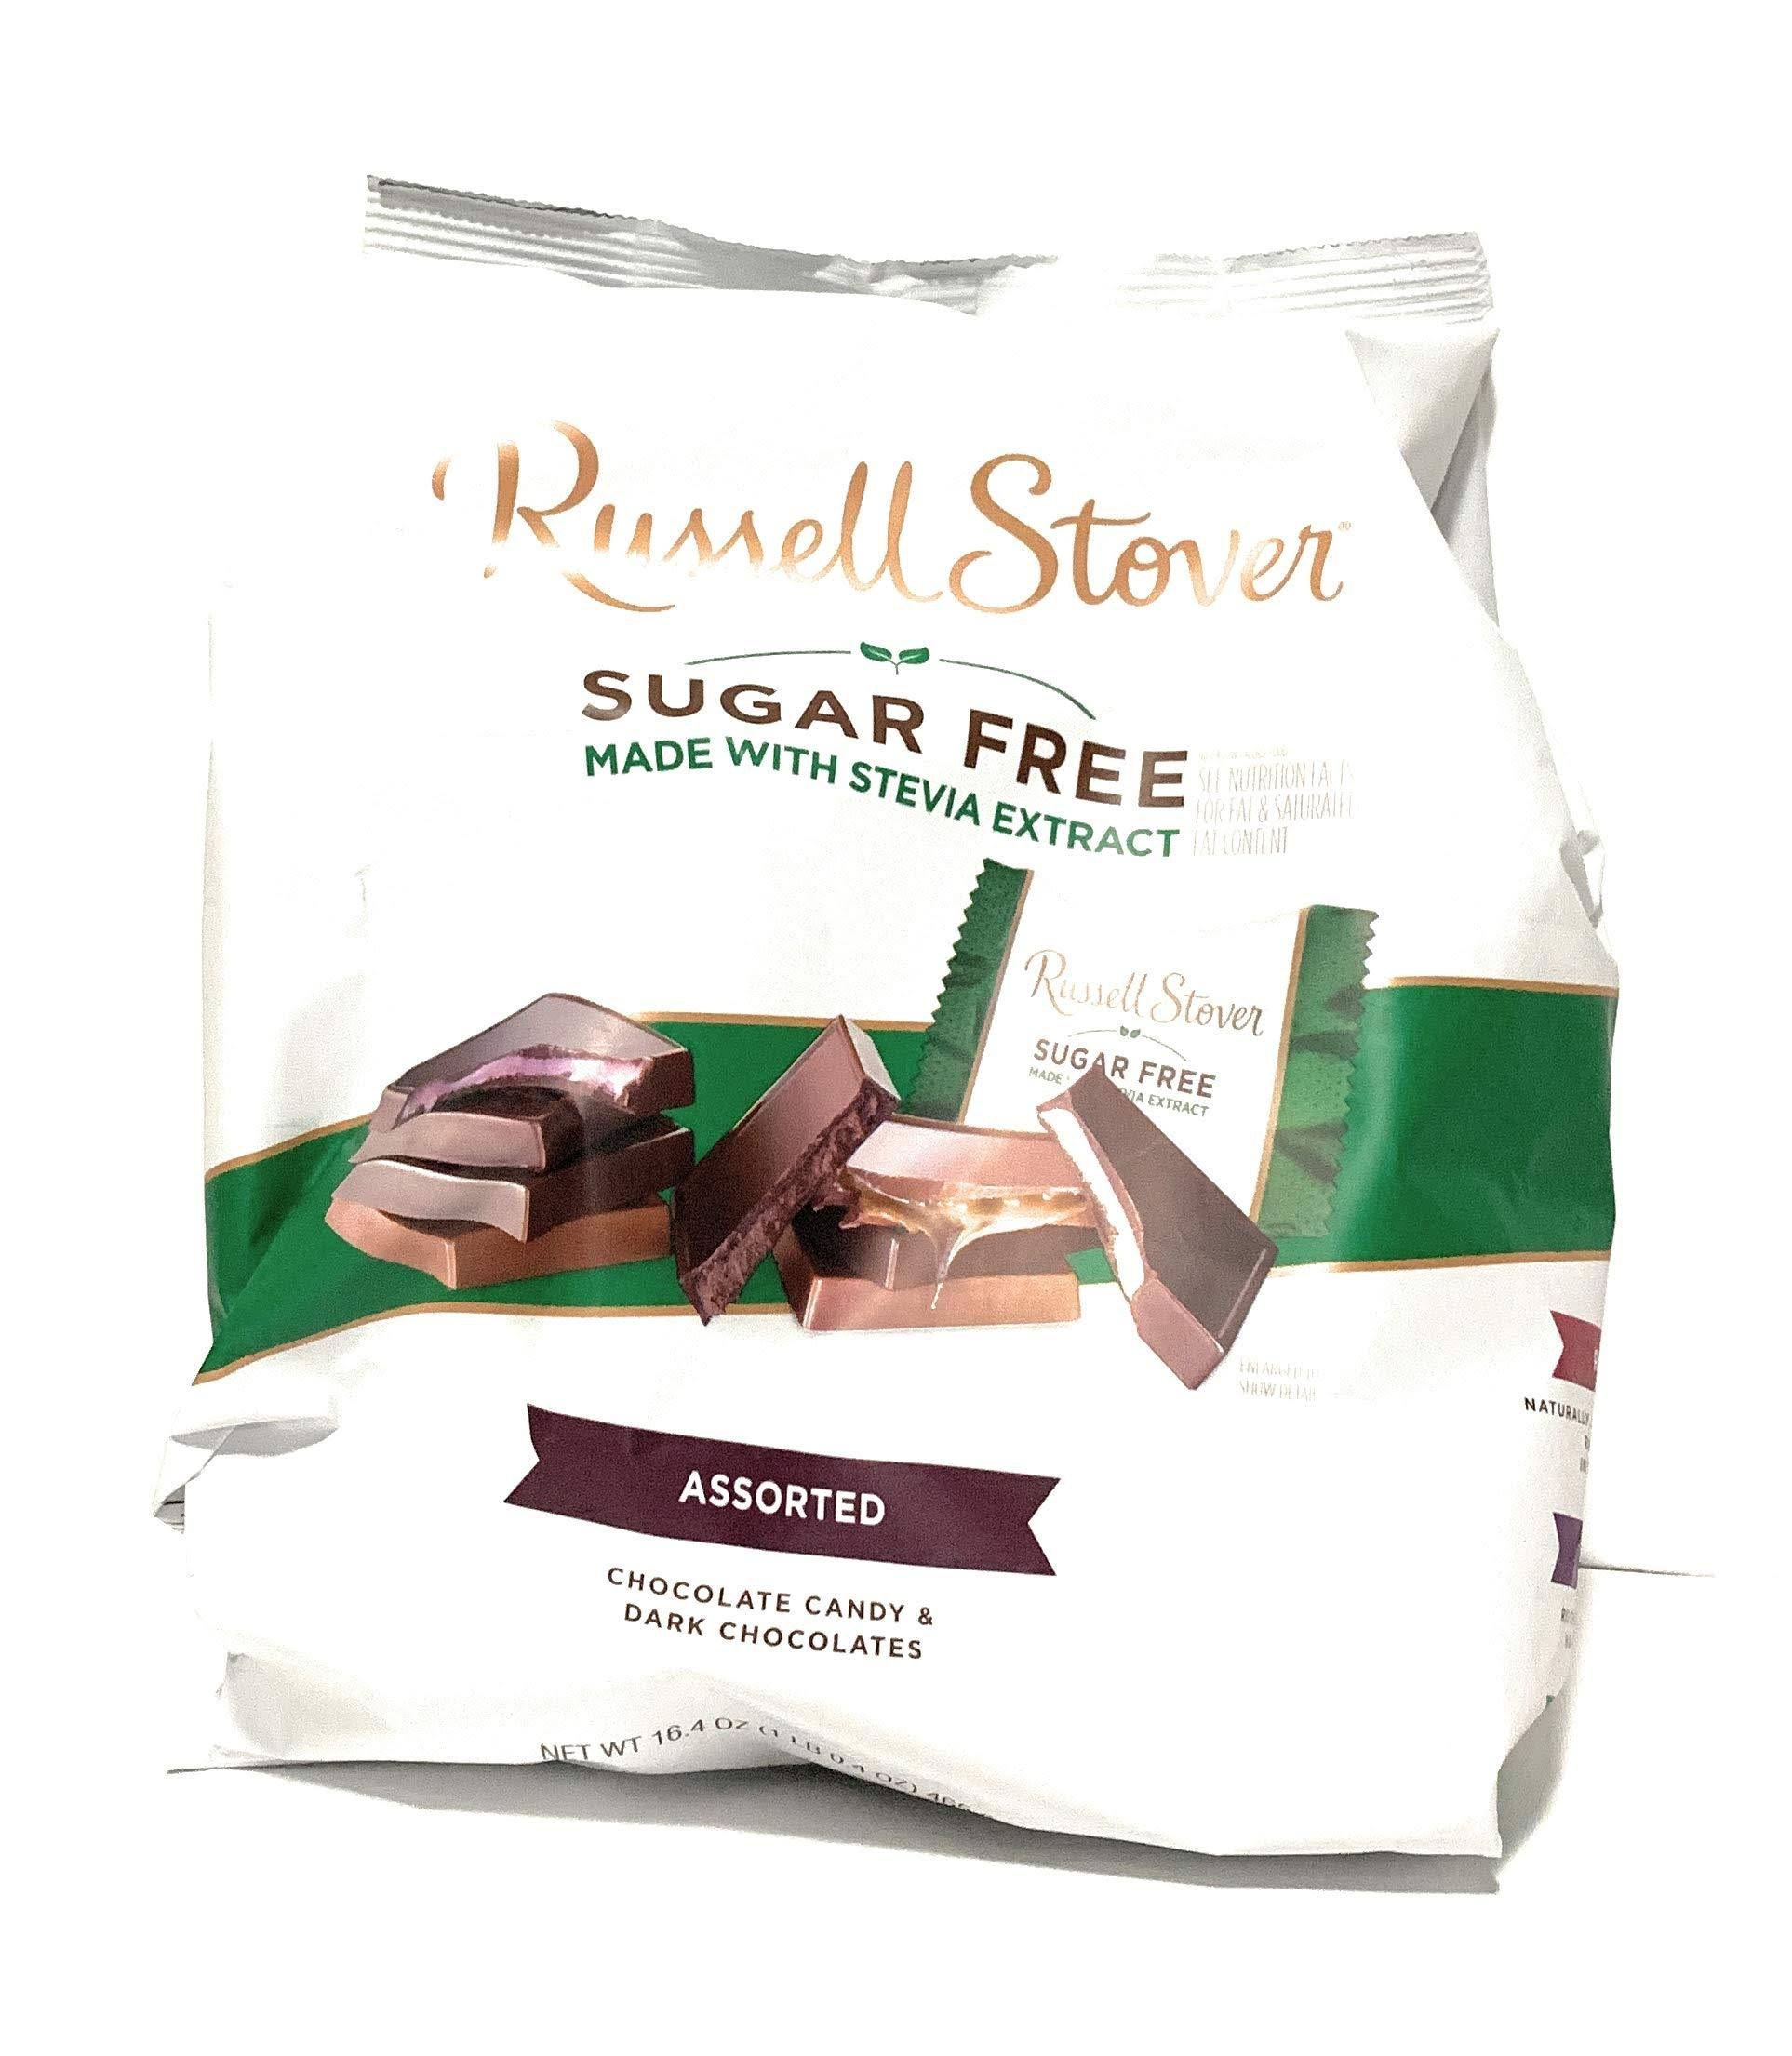 All New Russell Stover Sugar Free Assorted